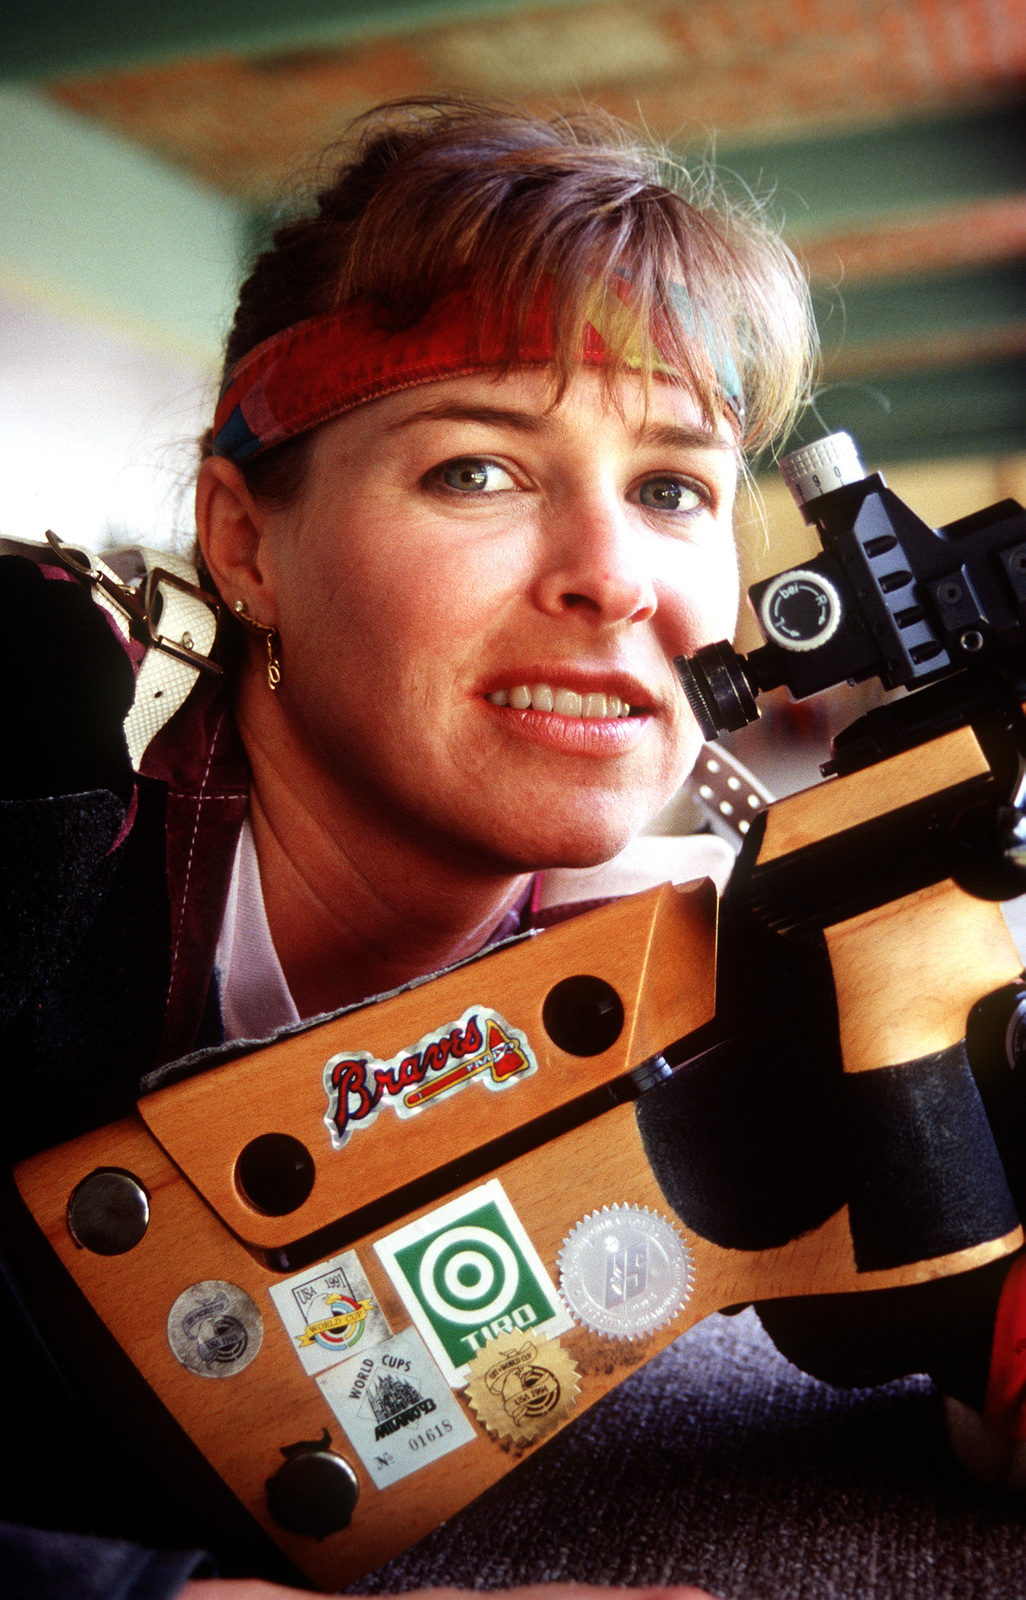 Deena Wigger, US Air National Guardsman, poses with her rifle at the Tiro Federal Argentina complex. Wigger won the Gold Medal in the Women's Standard Rifle 3x20 at the 12th Pan American Games